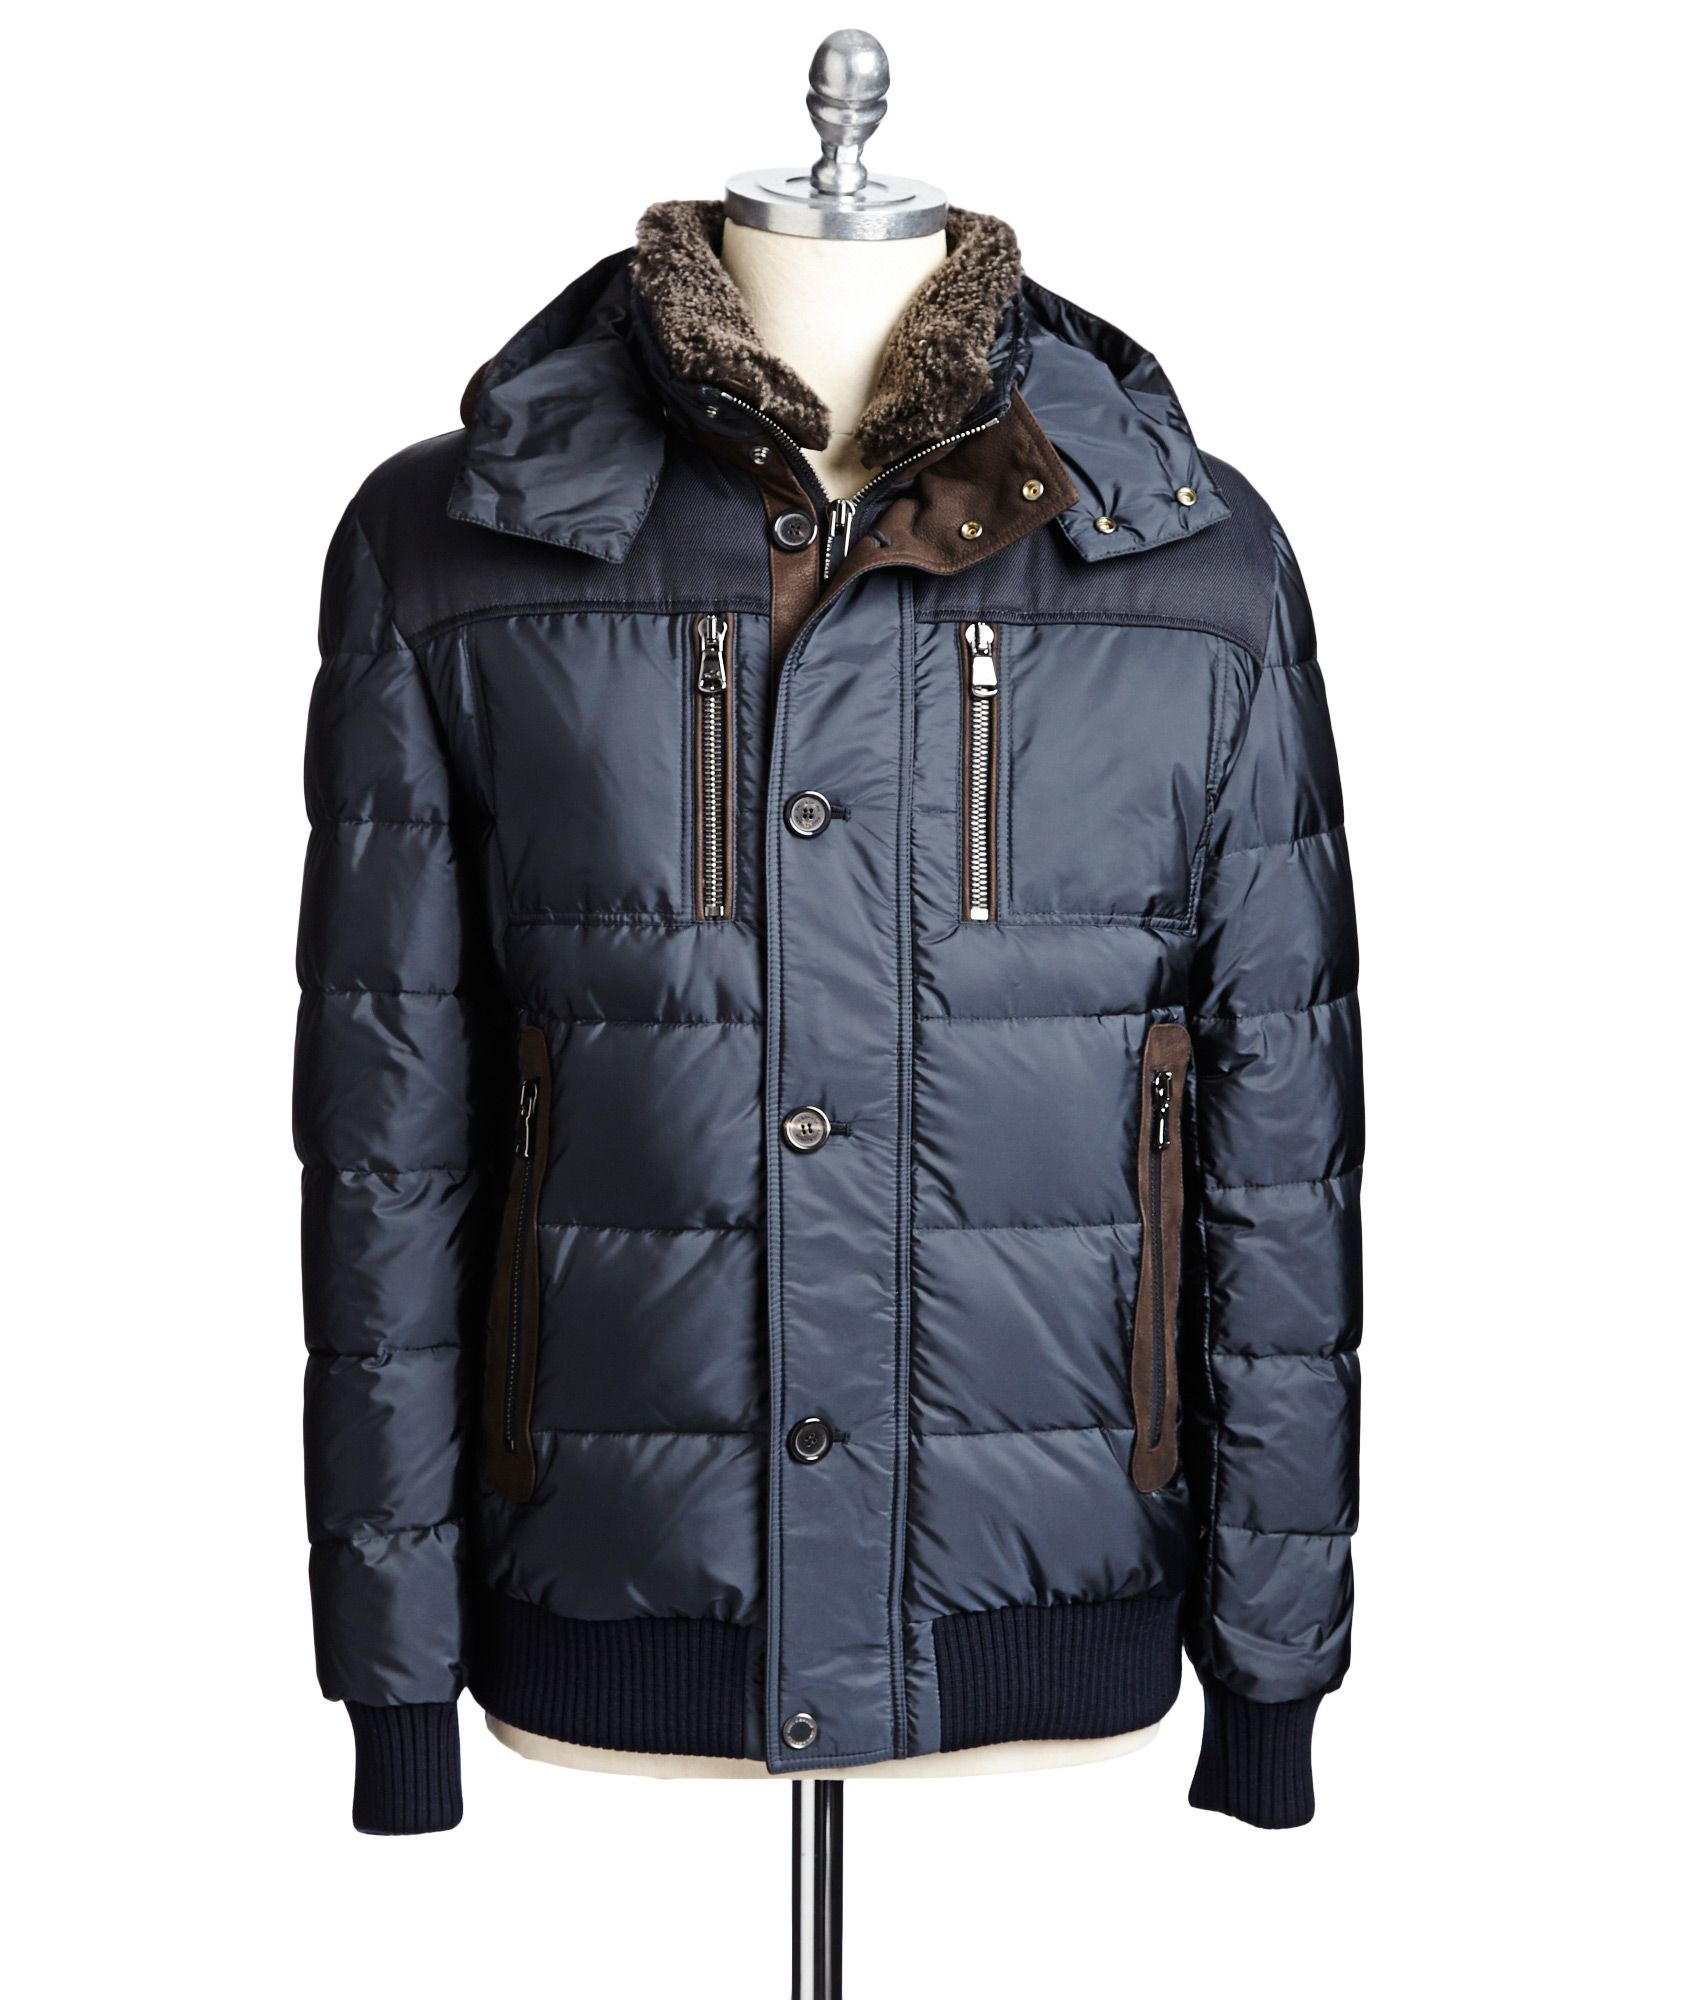 407e770db1 Paul & Shark | Down-Filled Jacket | Coats | Harry Rosen | Men's ...